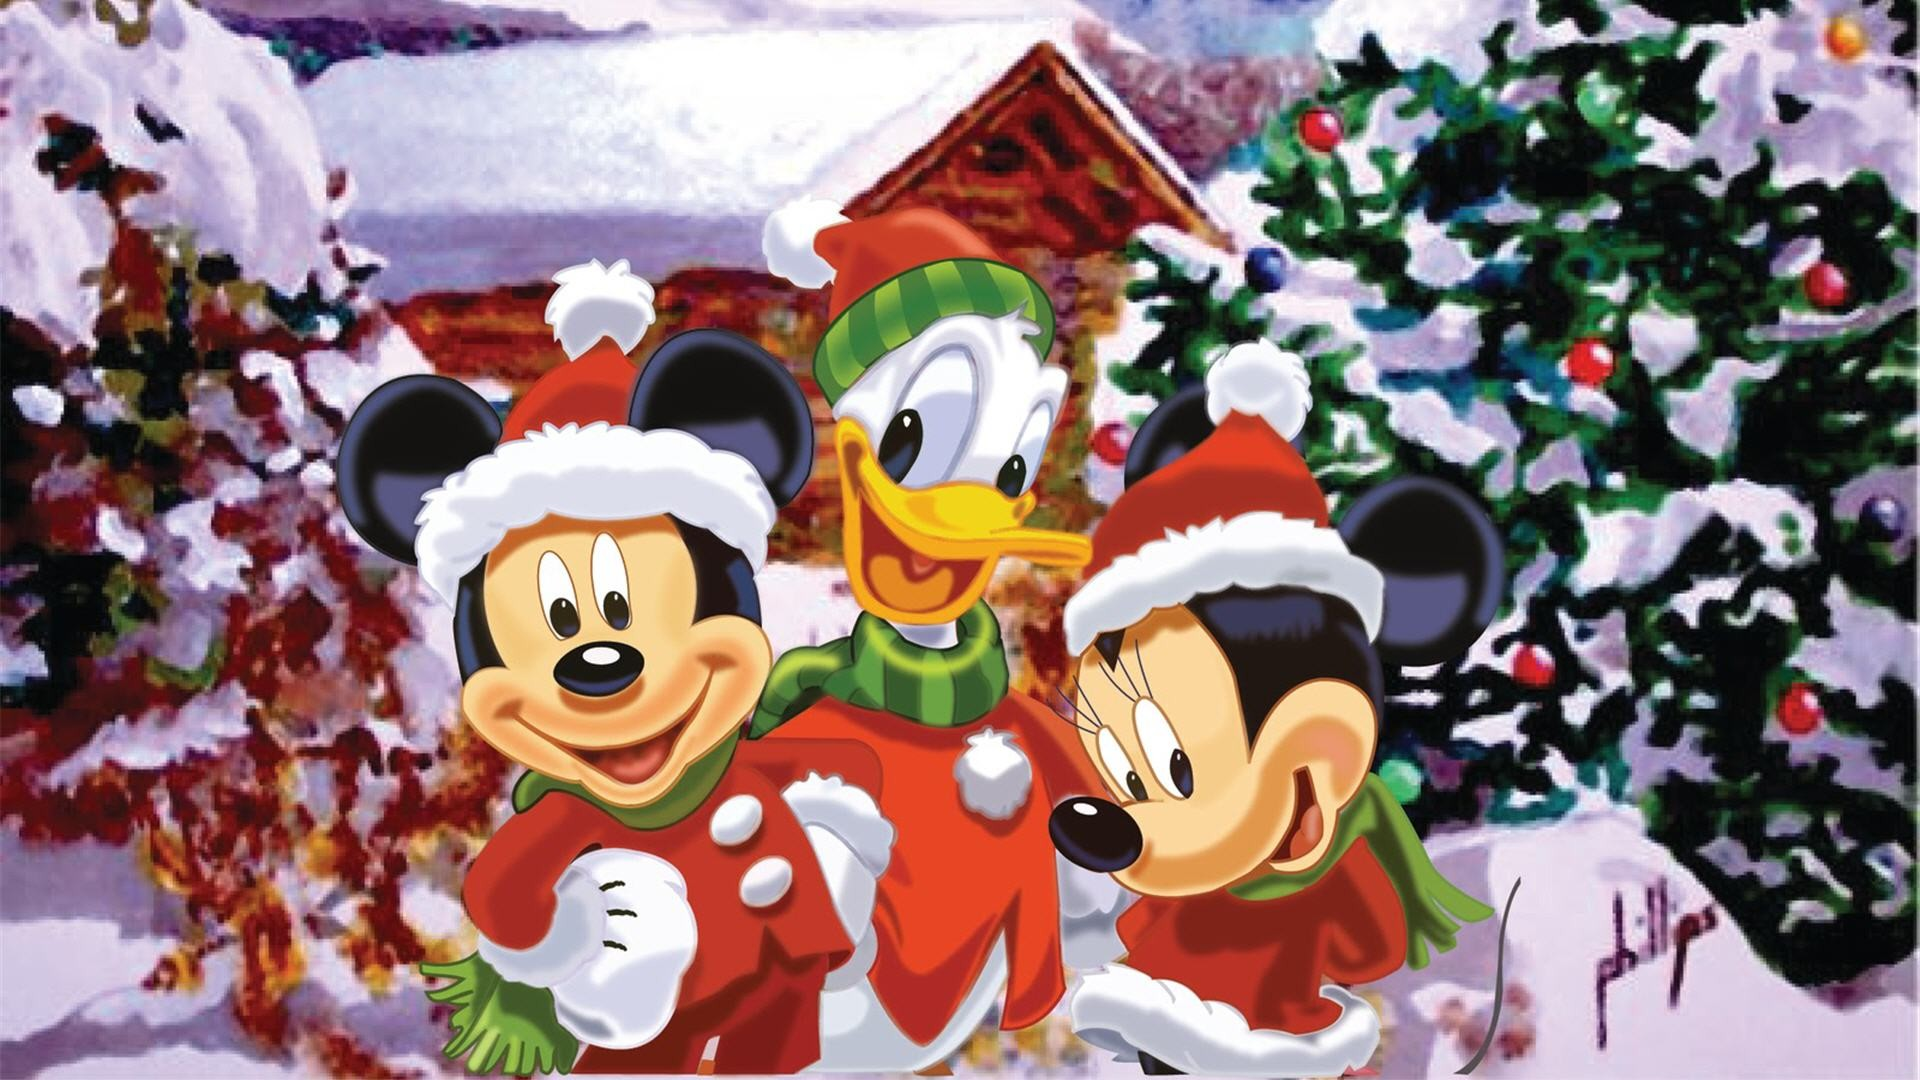 Mickey Mouse Characters Christmas Wallpaper.